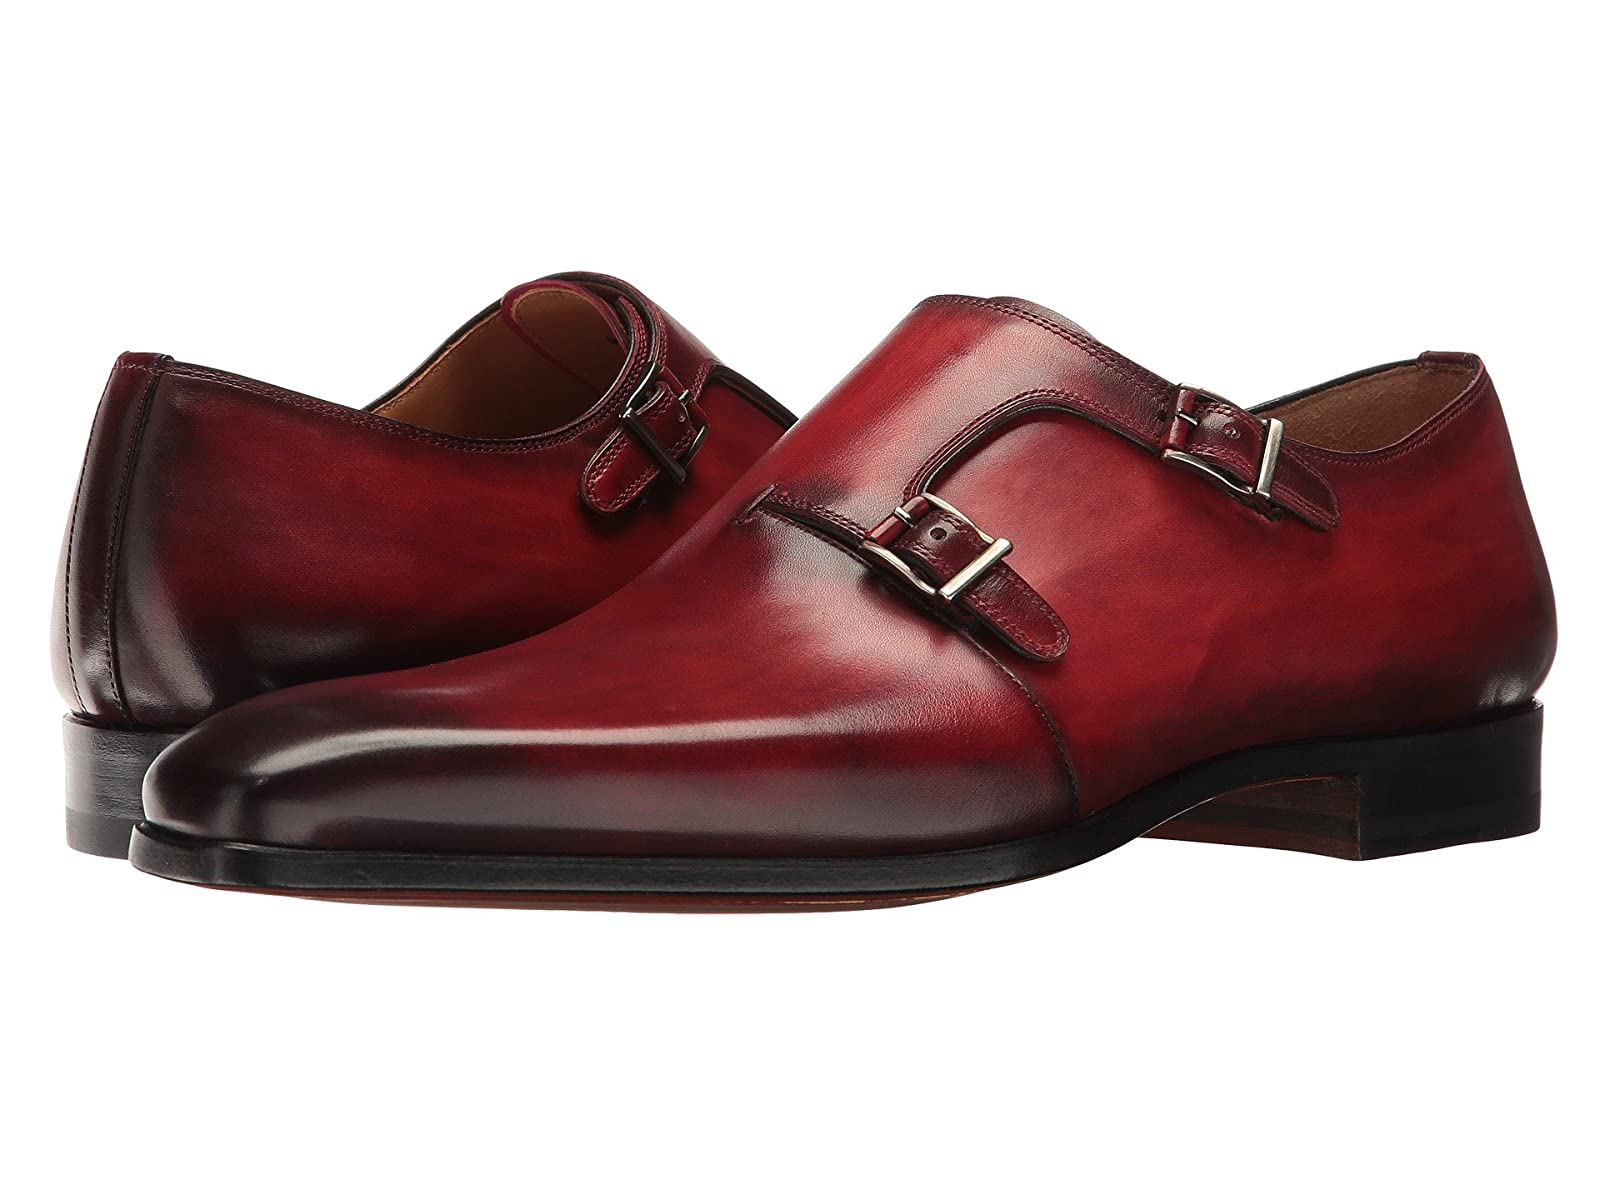 Magnanni JaminAtmospheric grades have affordable shoes